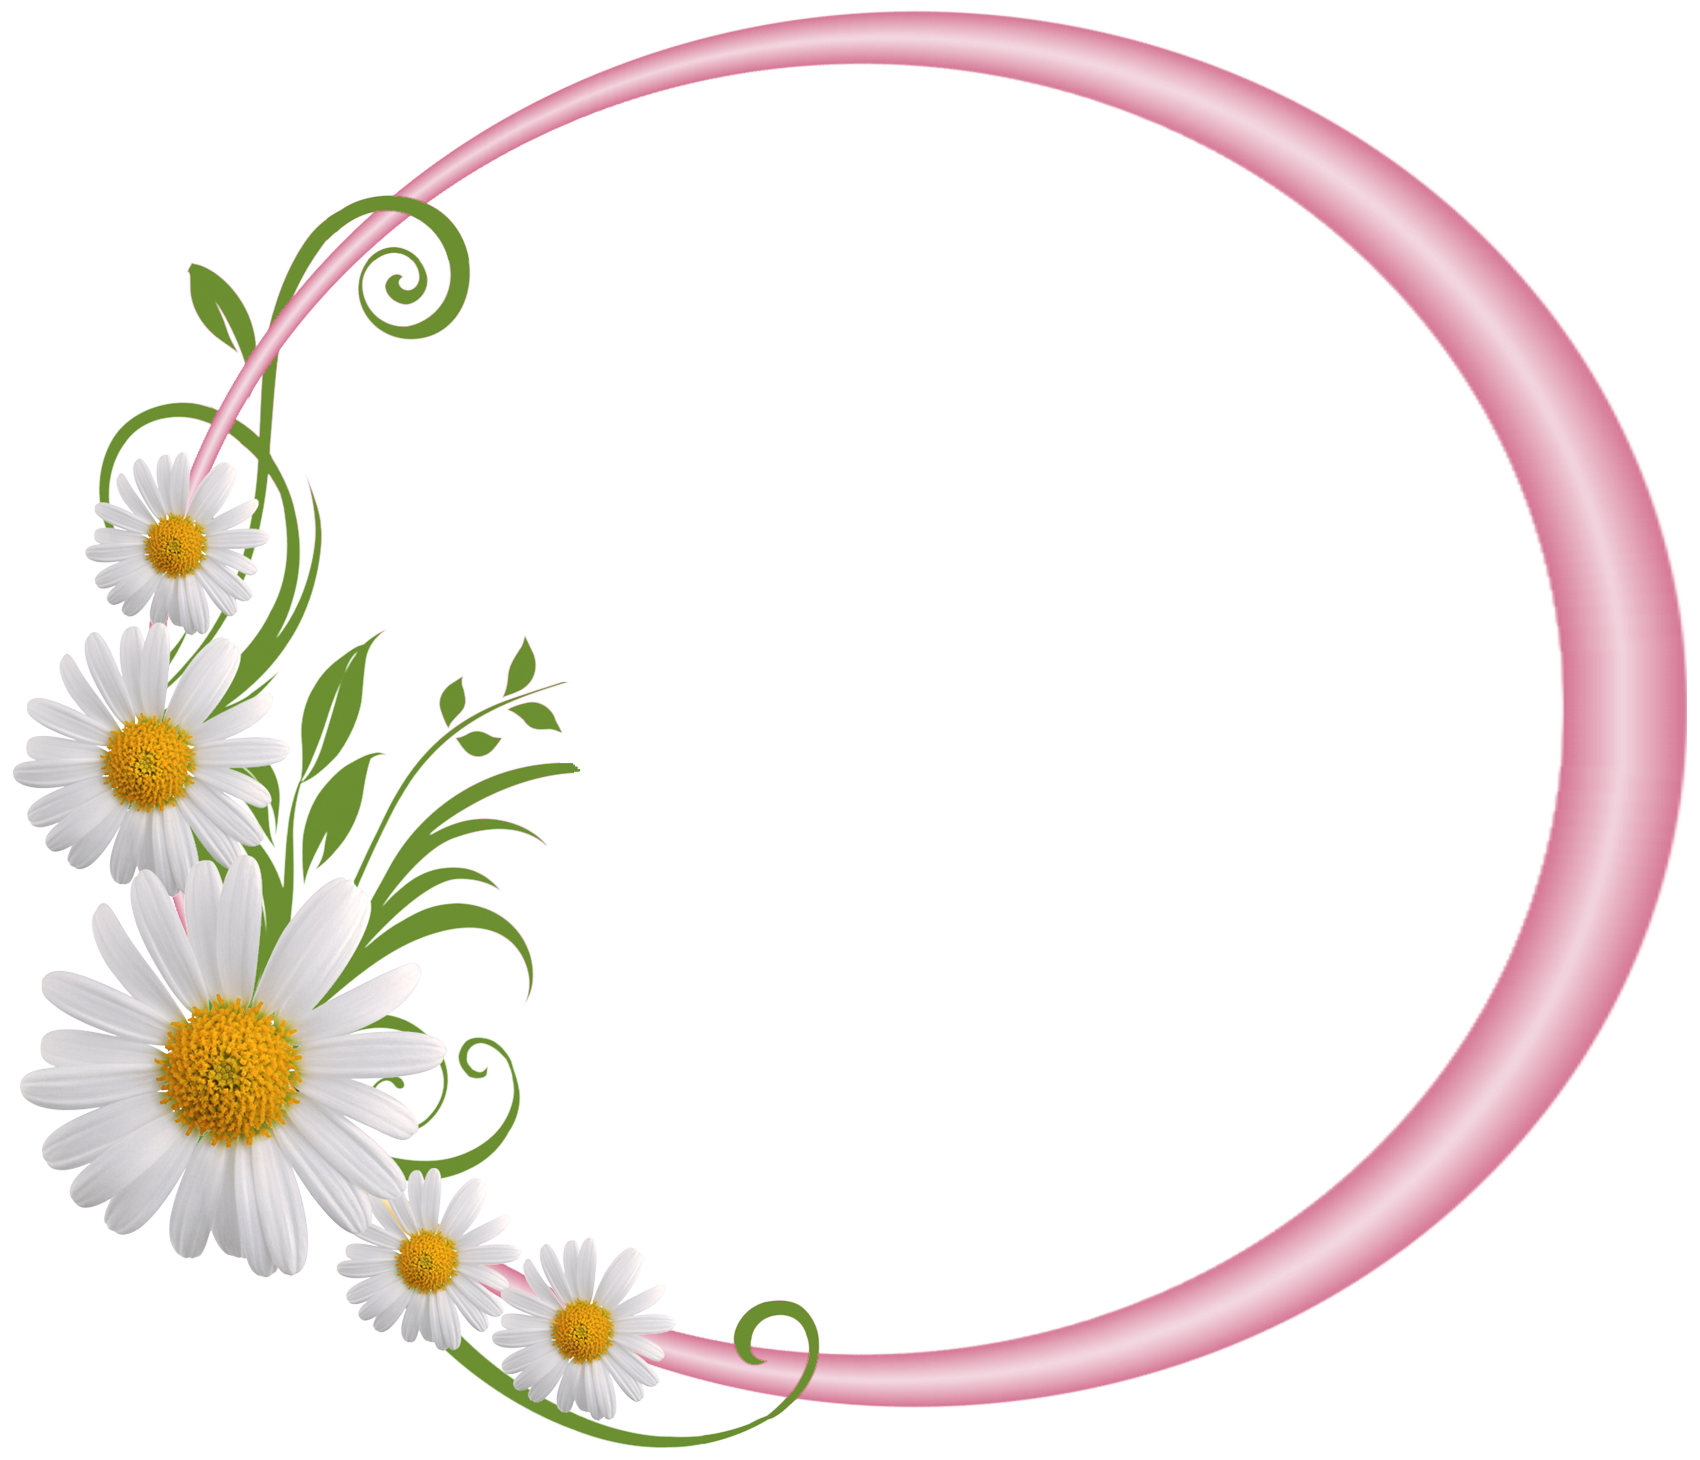 Pink round frame with. Daisy clipart banner banner transparent stock